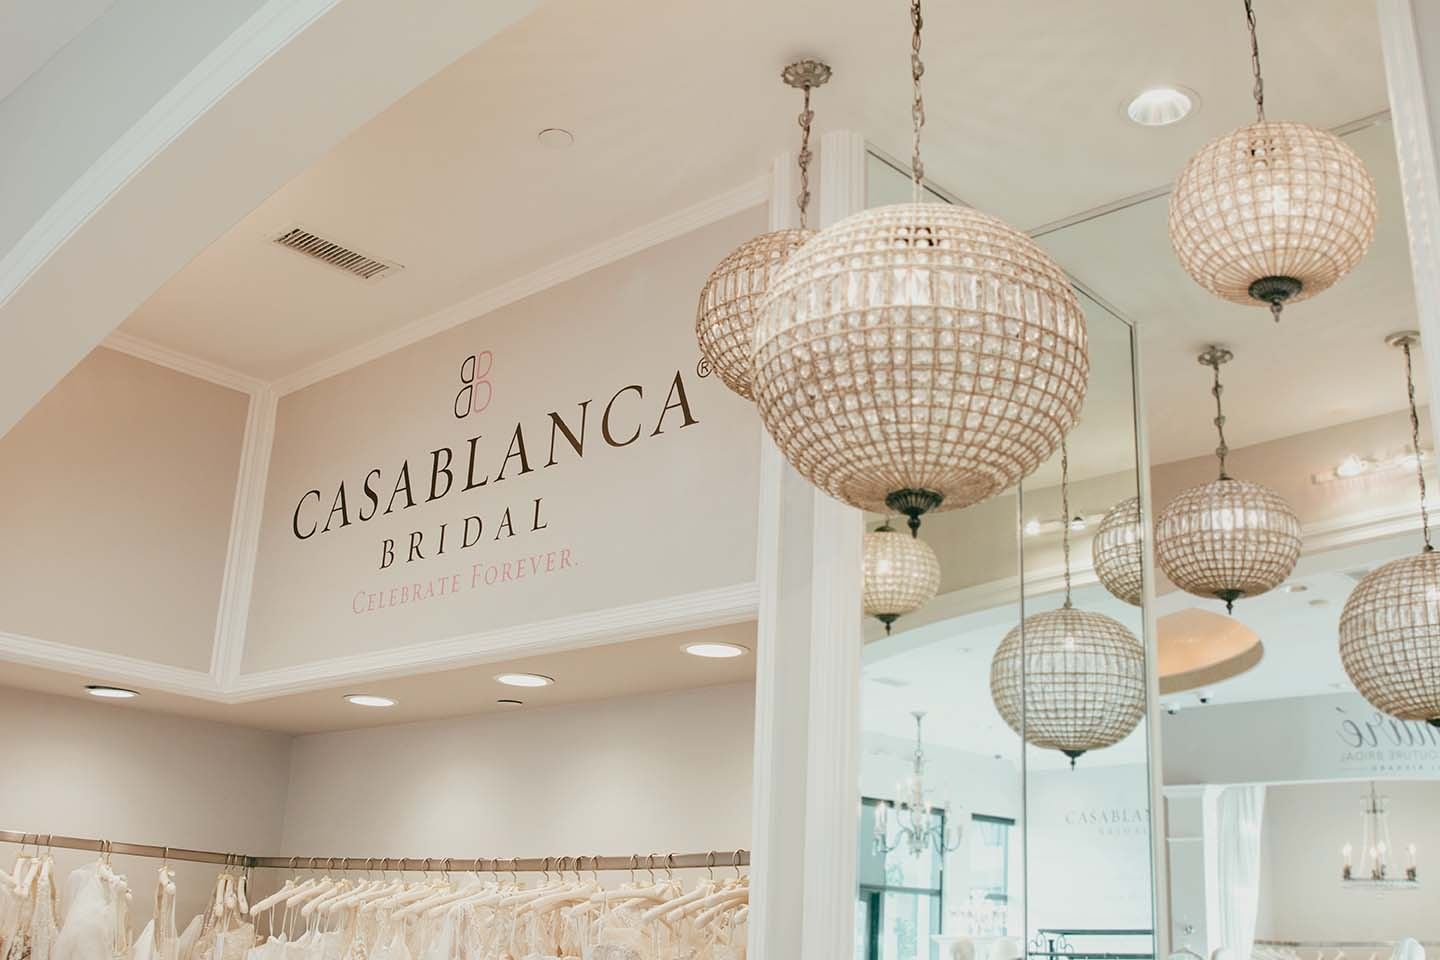 CASABLANCA BRIDAL logo at the store wall